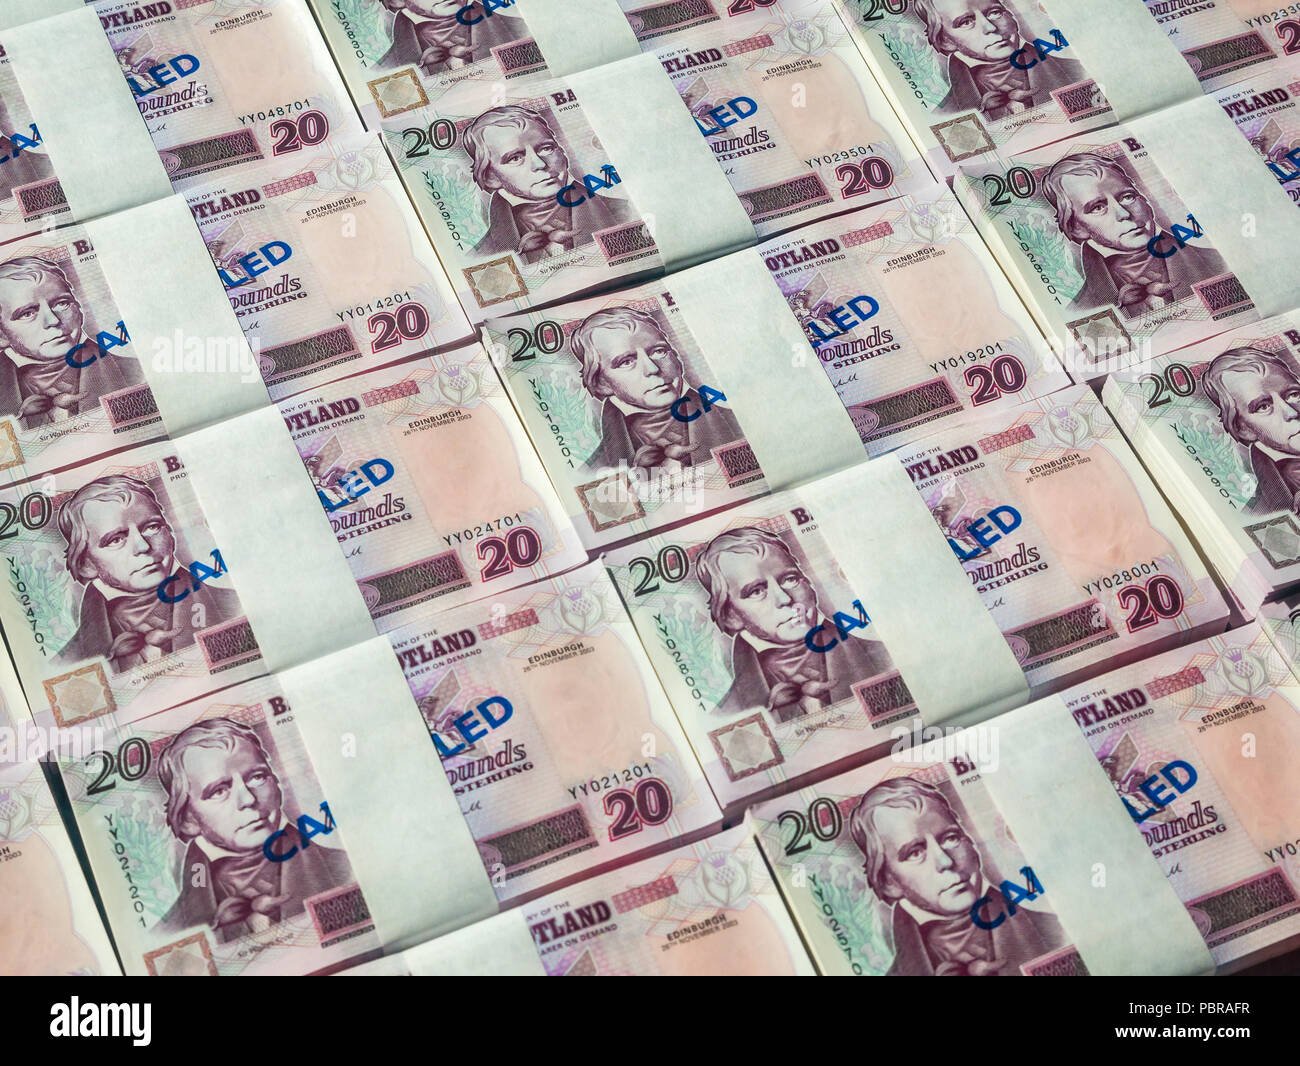 Million Pounds Cash Stock Photos & Million Pounds Cash Stock